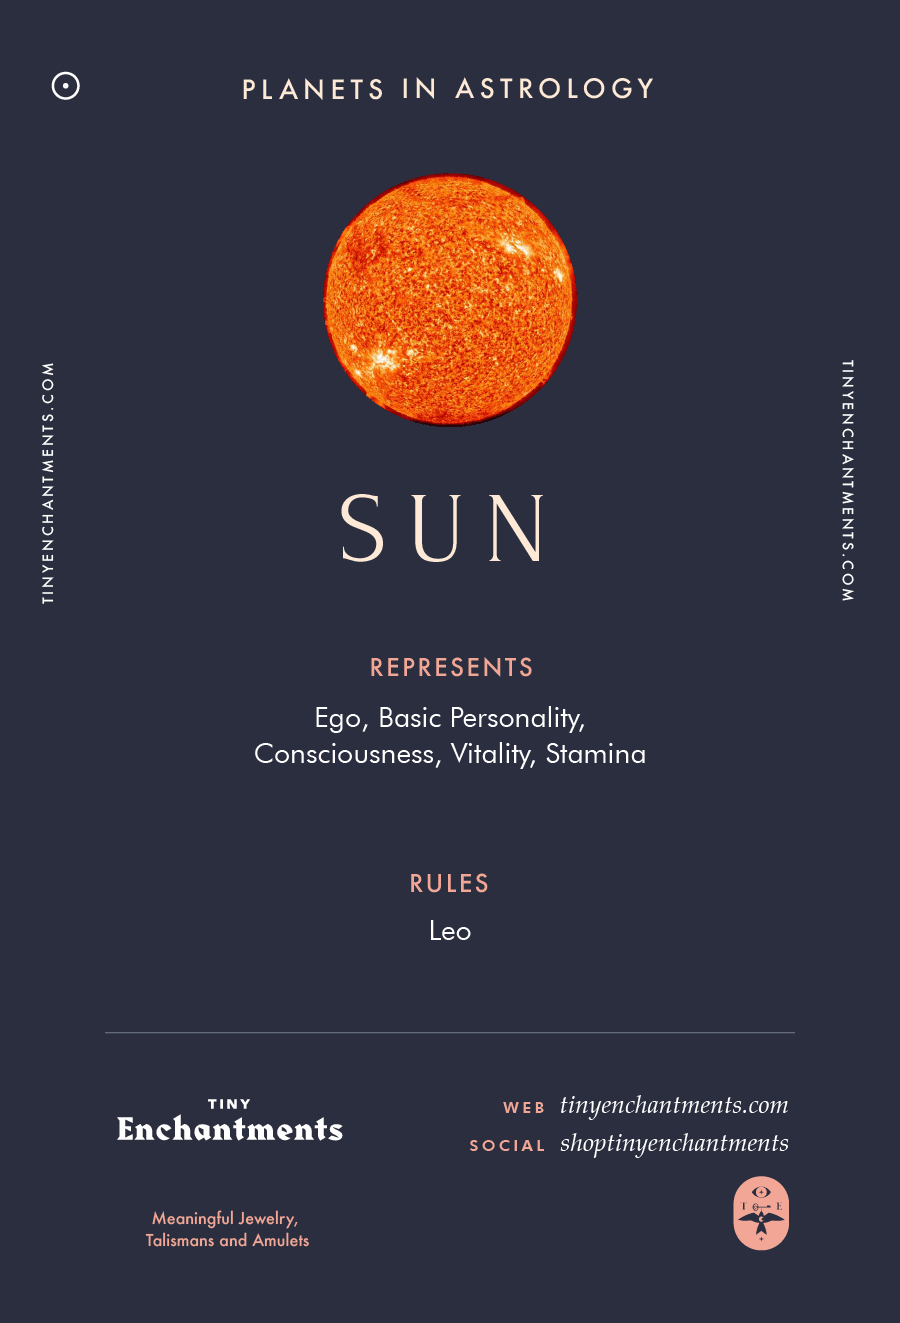 Sun Sign in Astrology - Planet Meaning, Zodiac, Symbolism, Characteristics Infographic